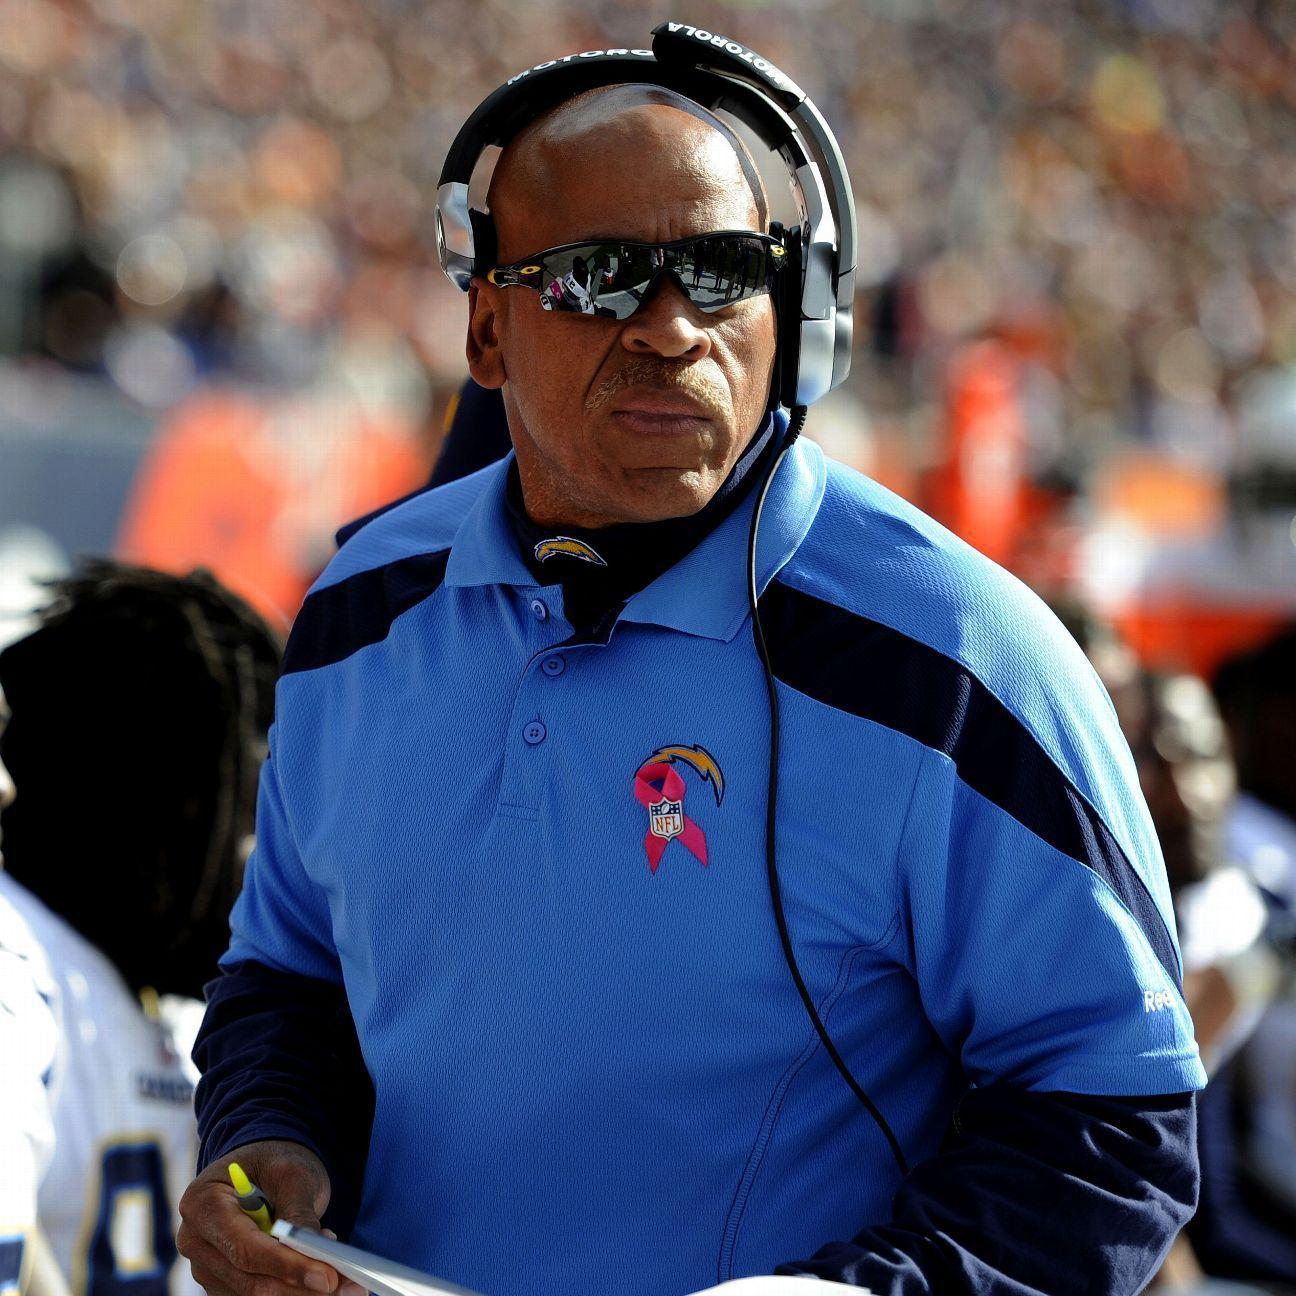 San Diego Chargers Coaches: A Nod To 'Breaking Bad,' San Diego Chargers Have Own 'Don